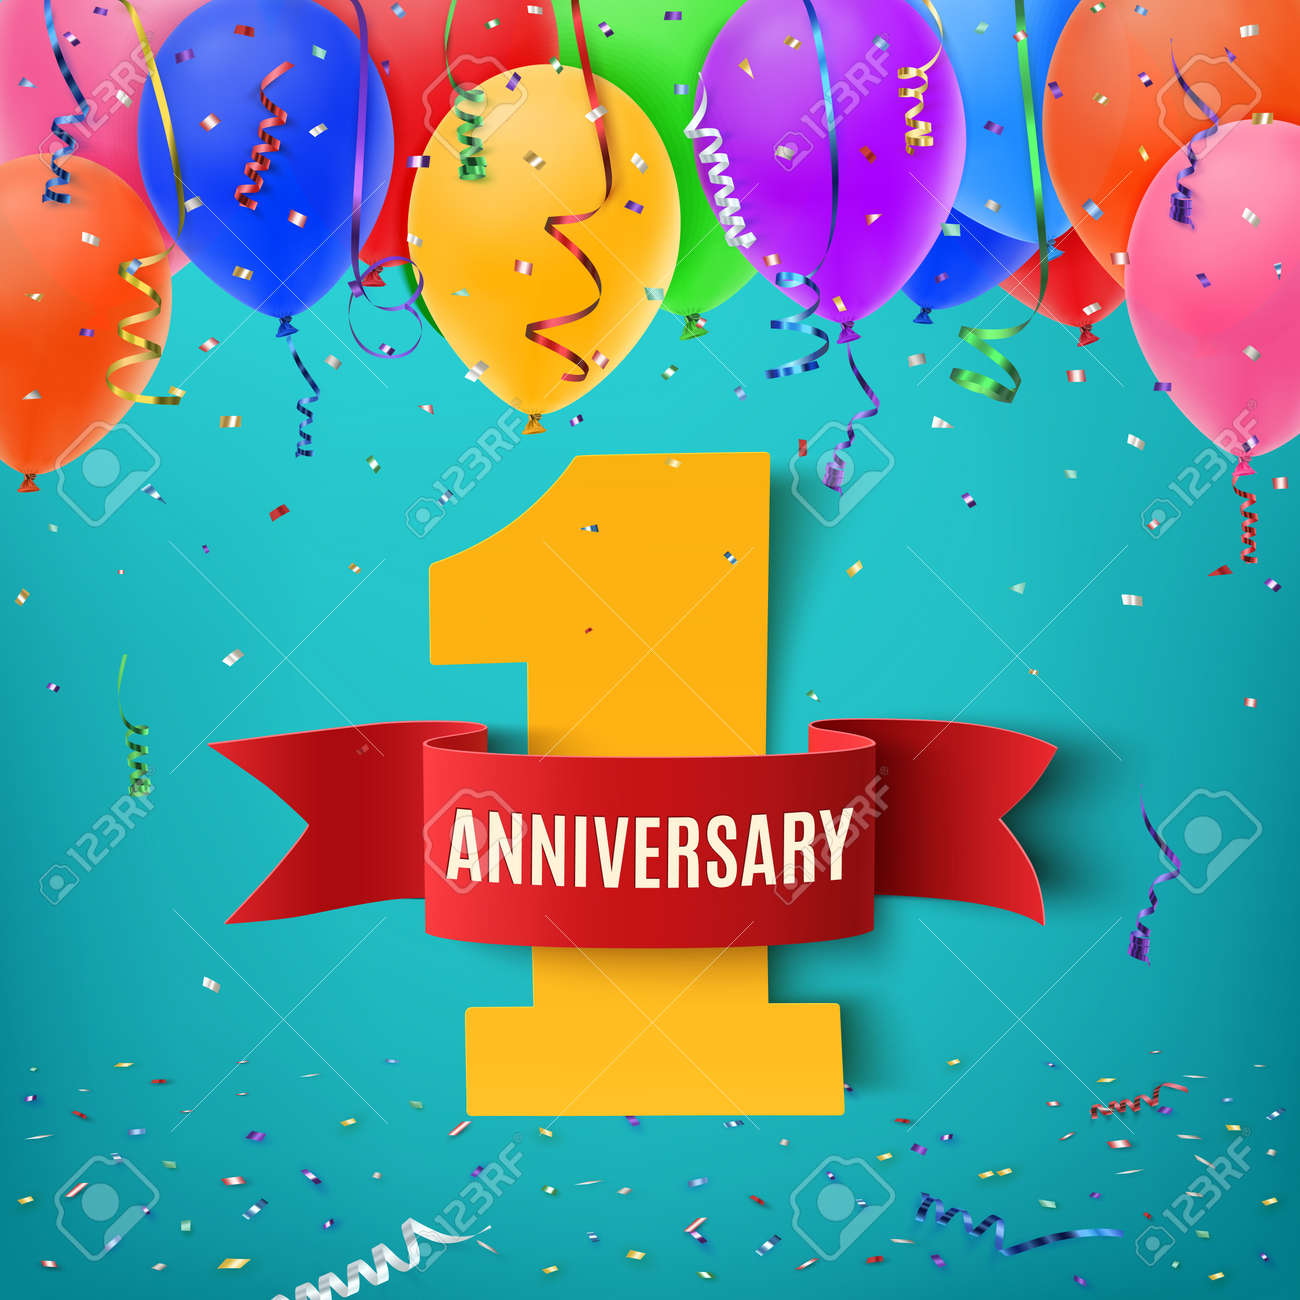 One year anniversary celebration background with red ribbon confetti and balloons. Anniversary ribbon. Anniversary party poster or brochure template. Anniversary banner. Vector illustration. - 55701382